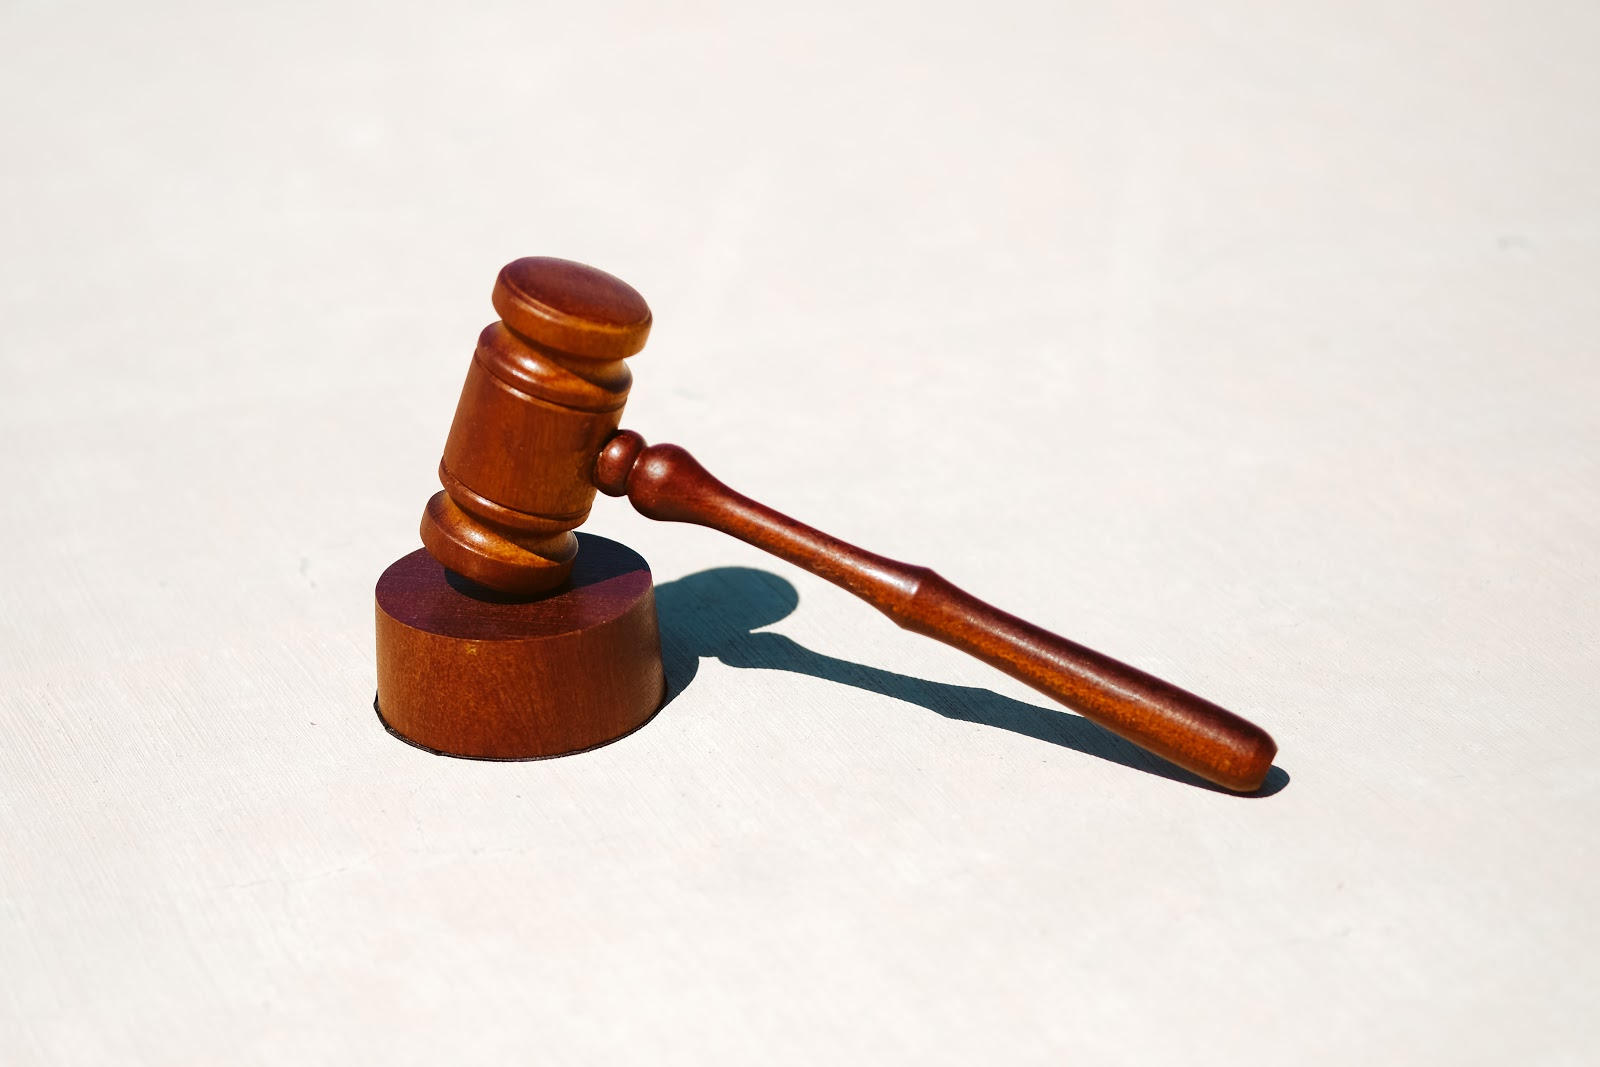 A judge's gavel used in the courtroom to determine legal cases.